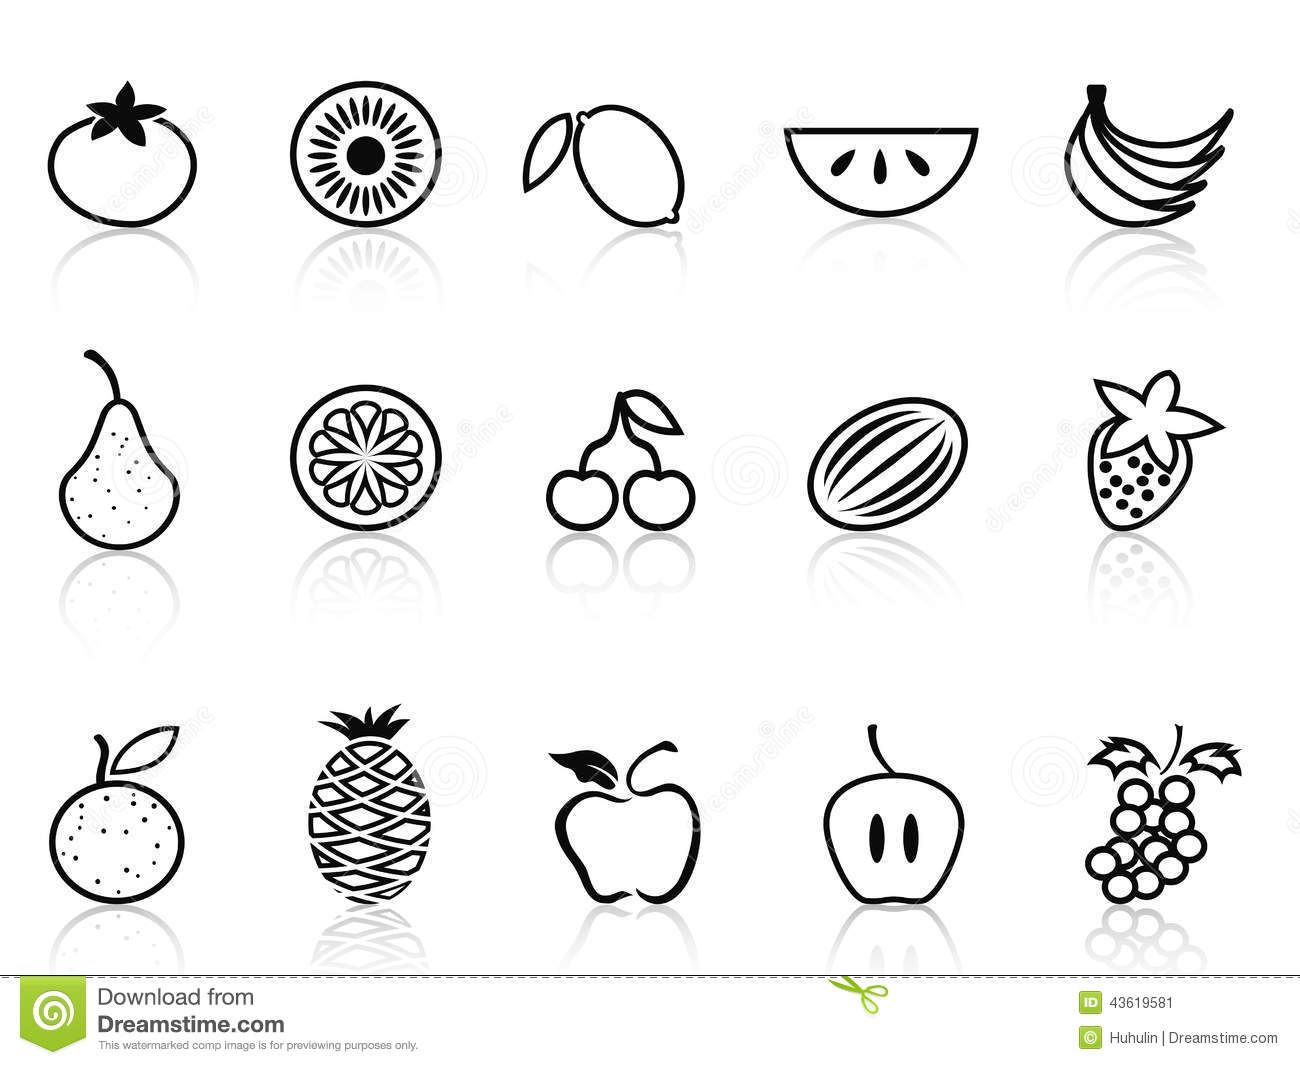 Lemon Images Outline